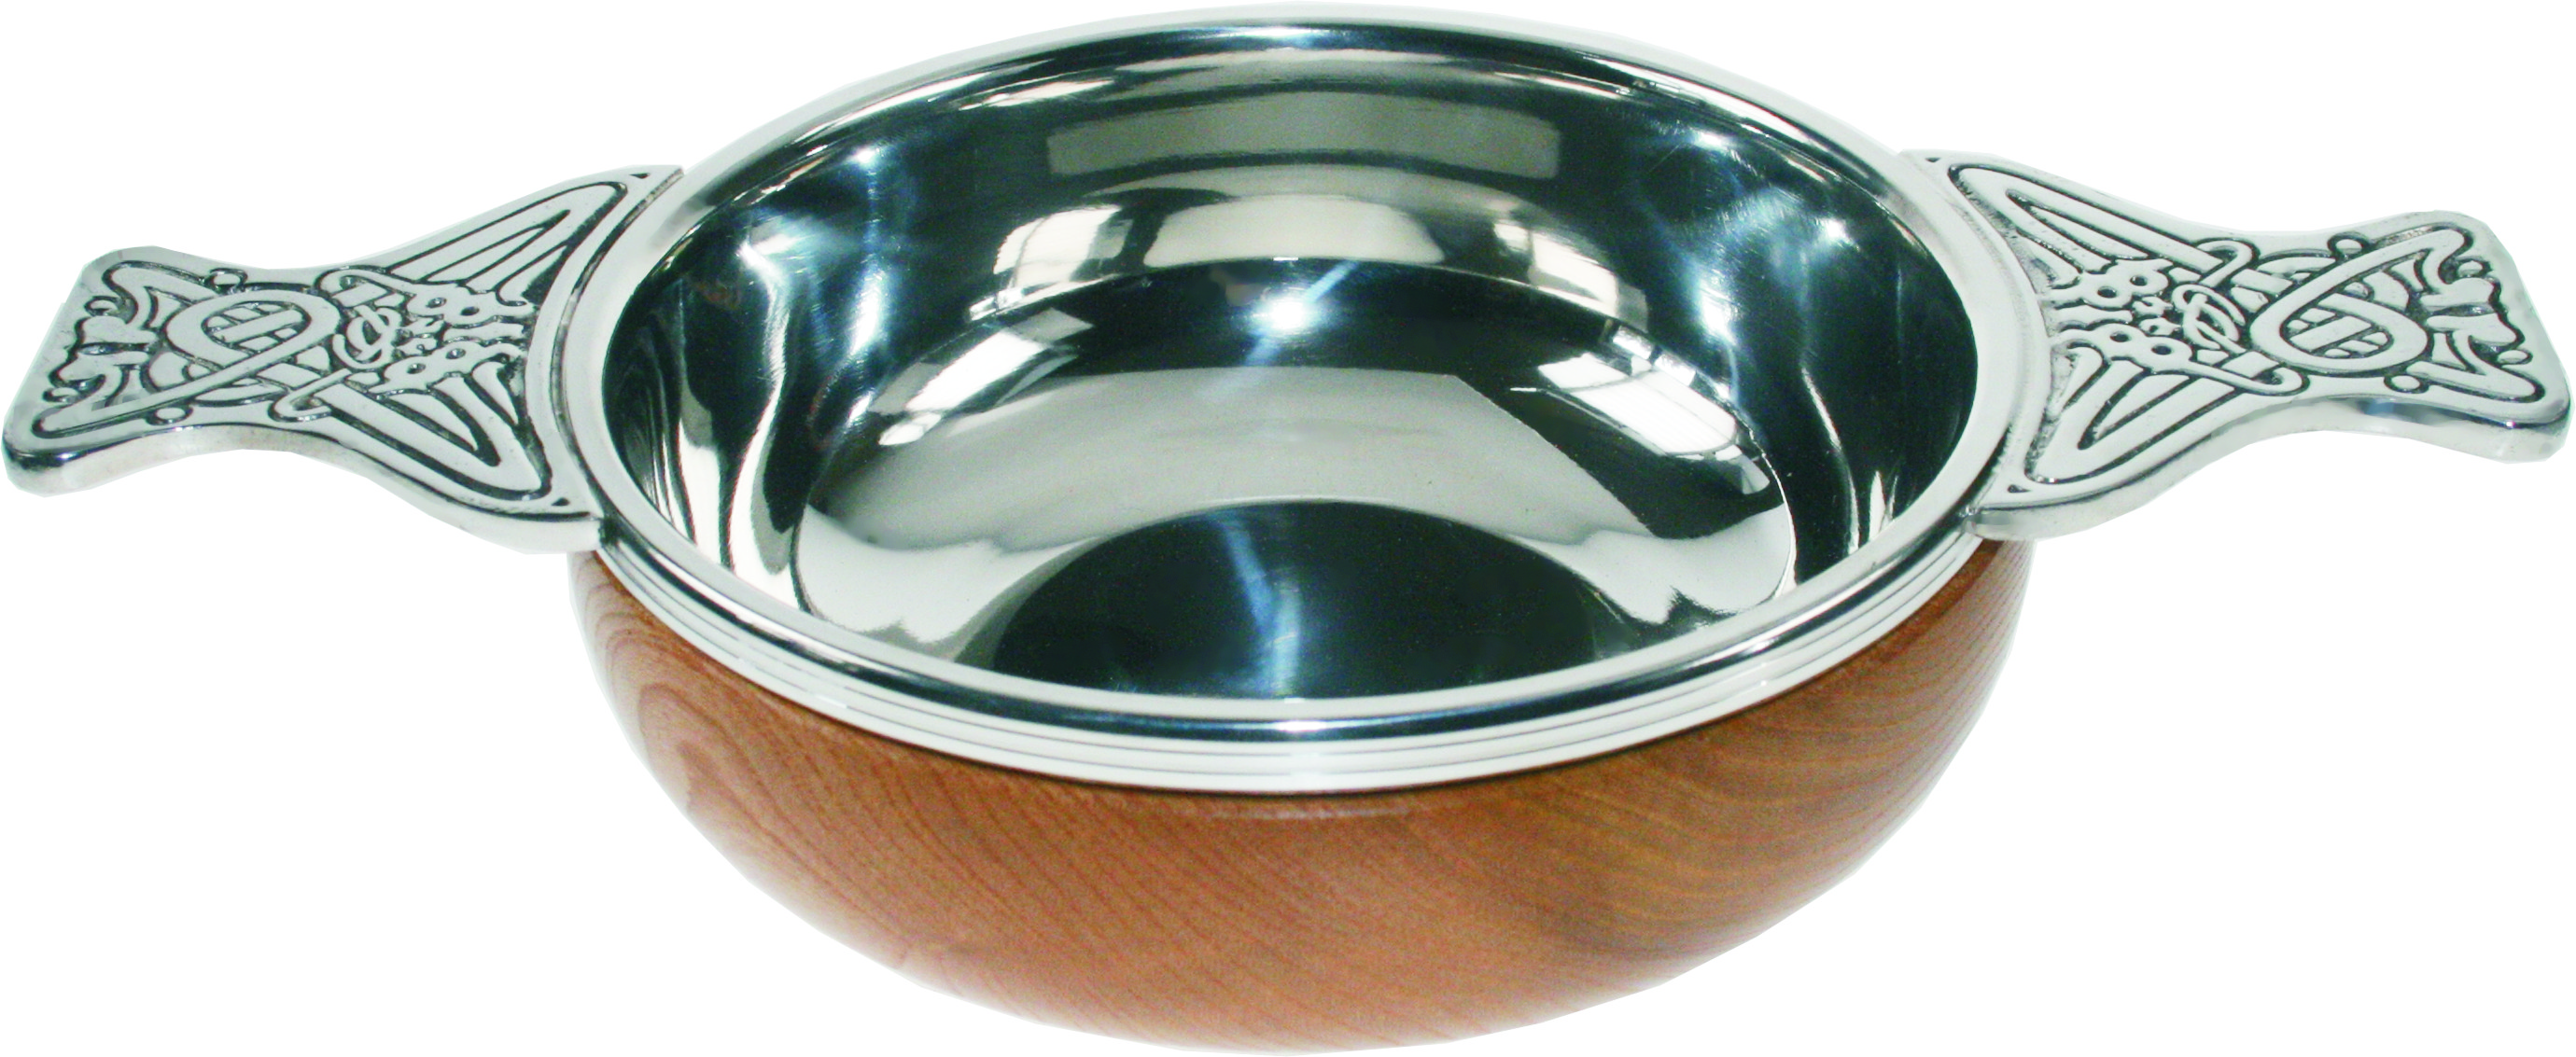 "Pewter and Wooden Base Quaich Bowl 14cm (5.5"")"